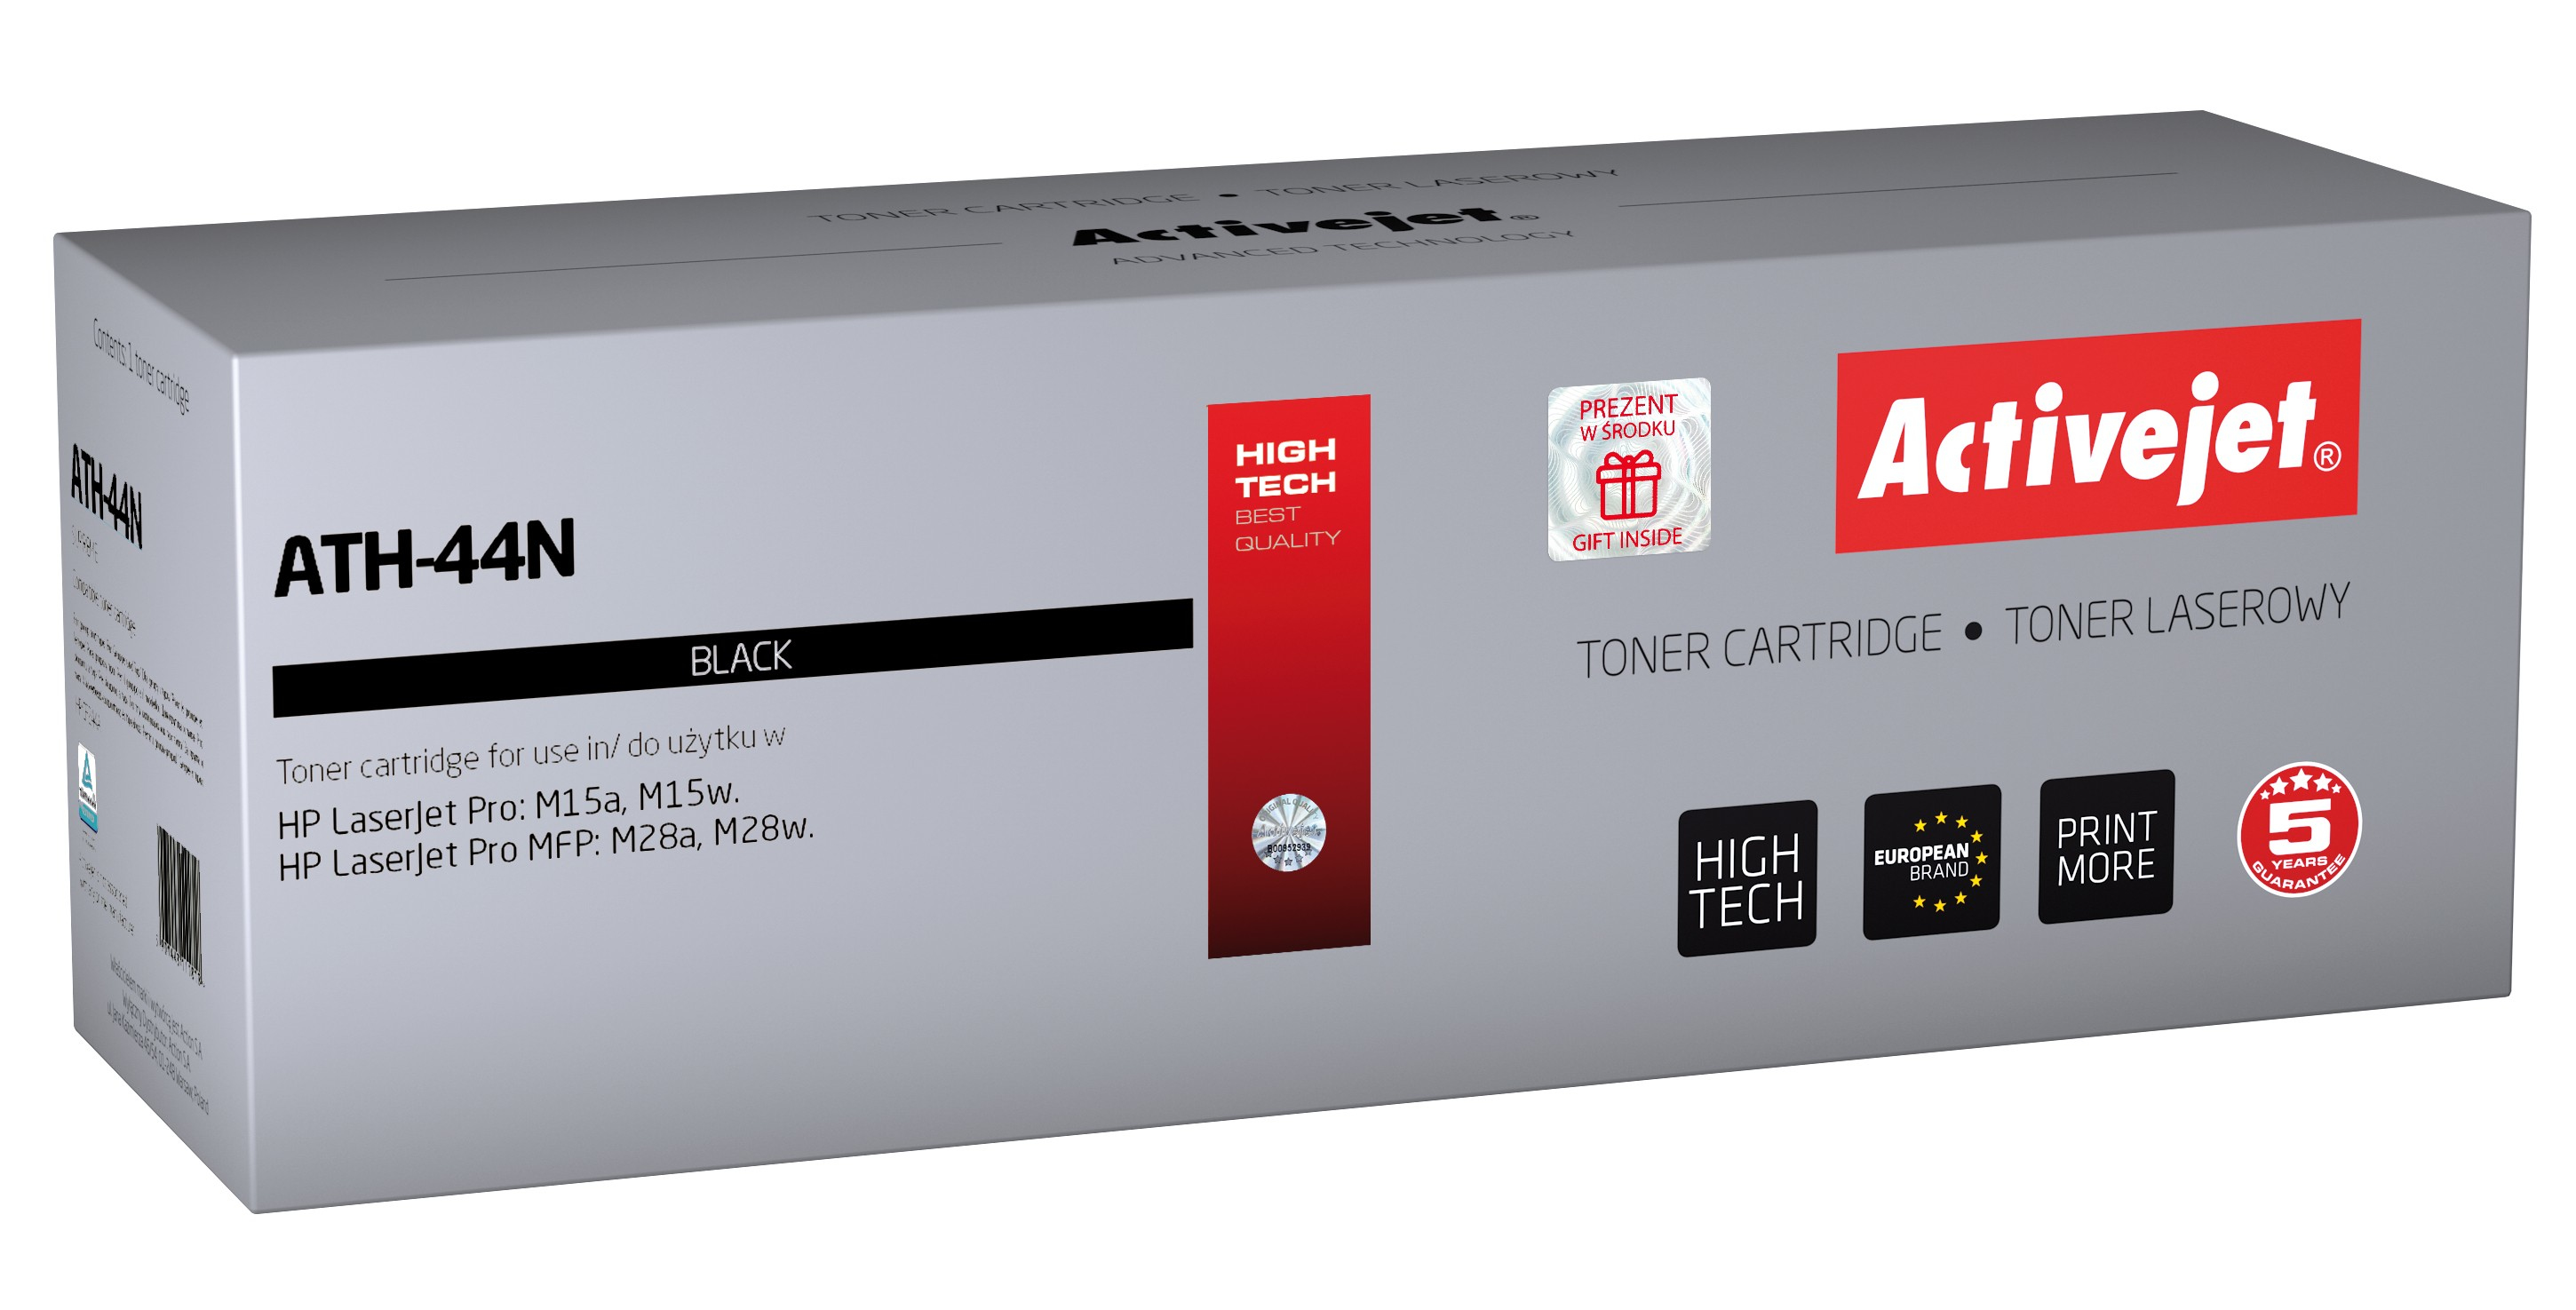 Activejet toner do HP CF244A new ATH-44N